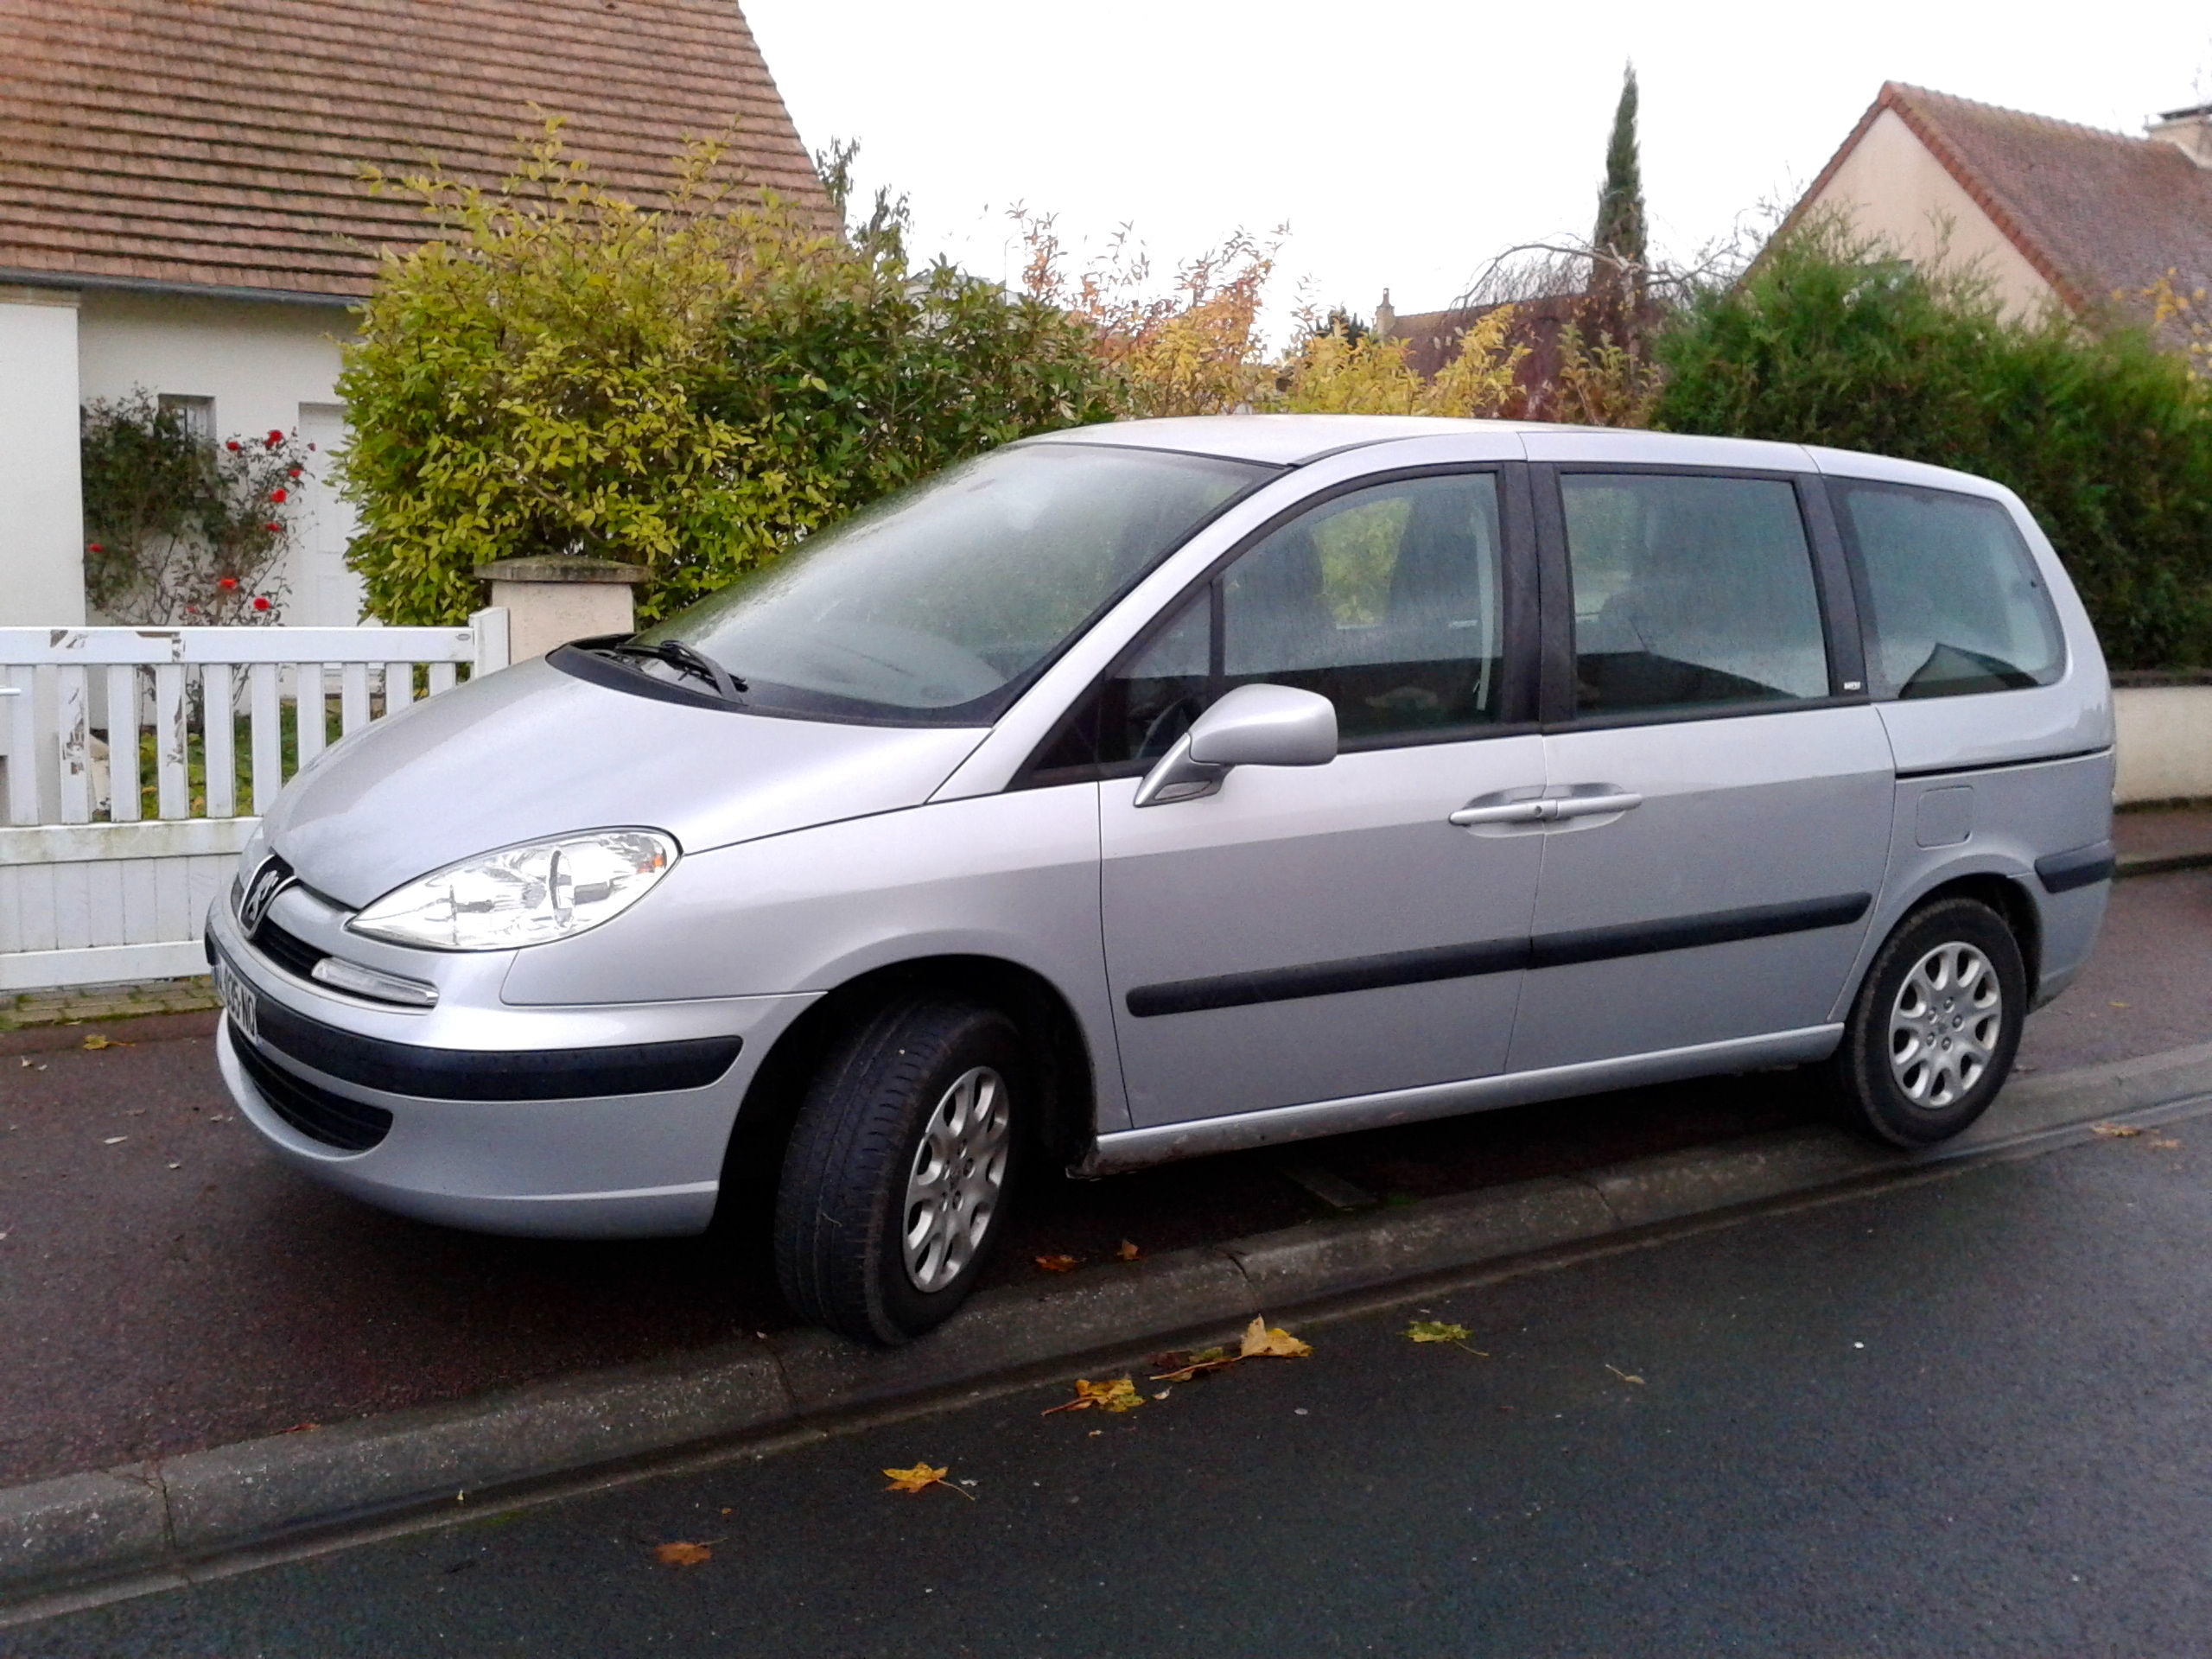 Peugeot 807 HDI - ST -  8 places, 2005, Diesel, 8 places